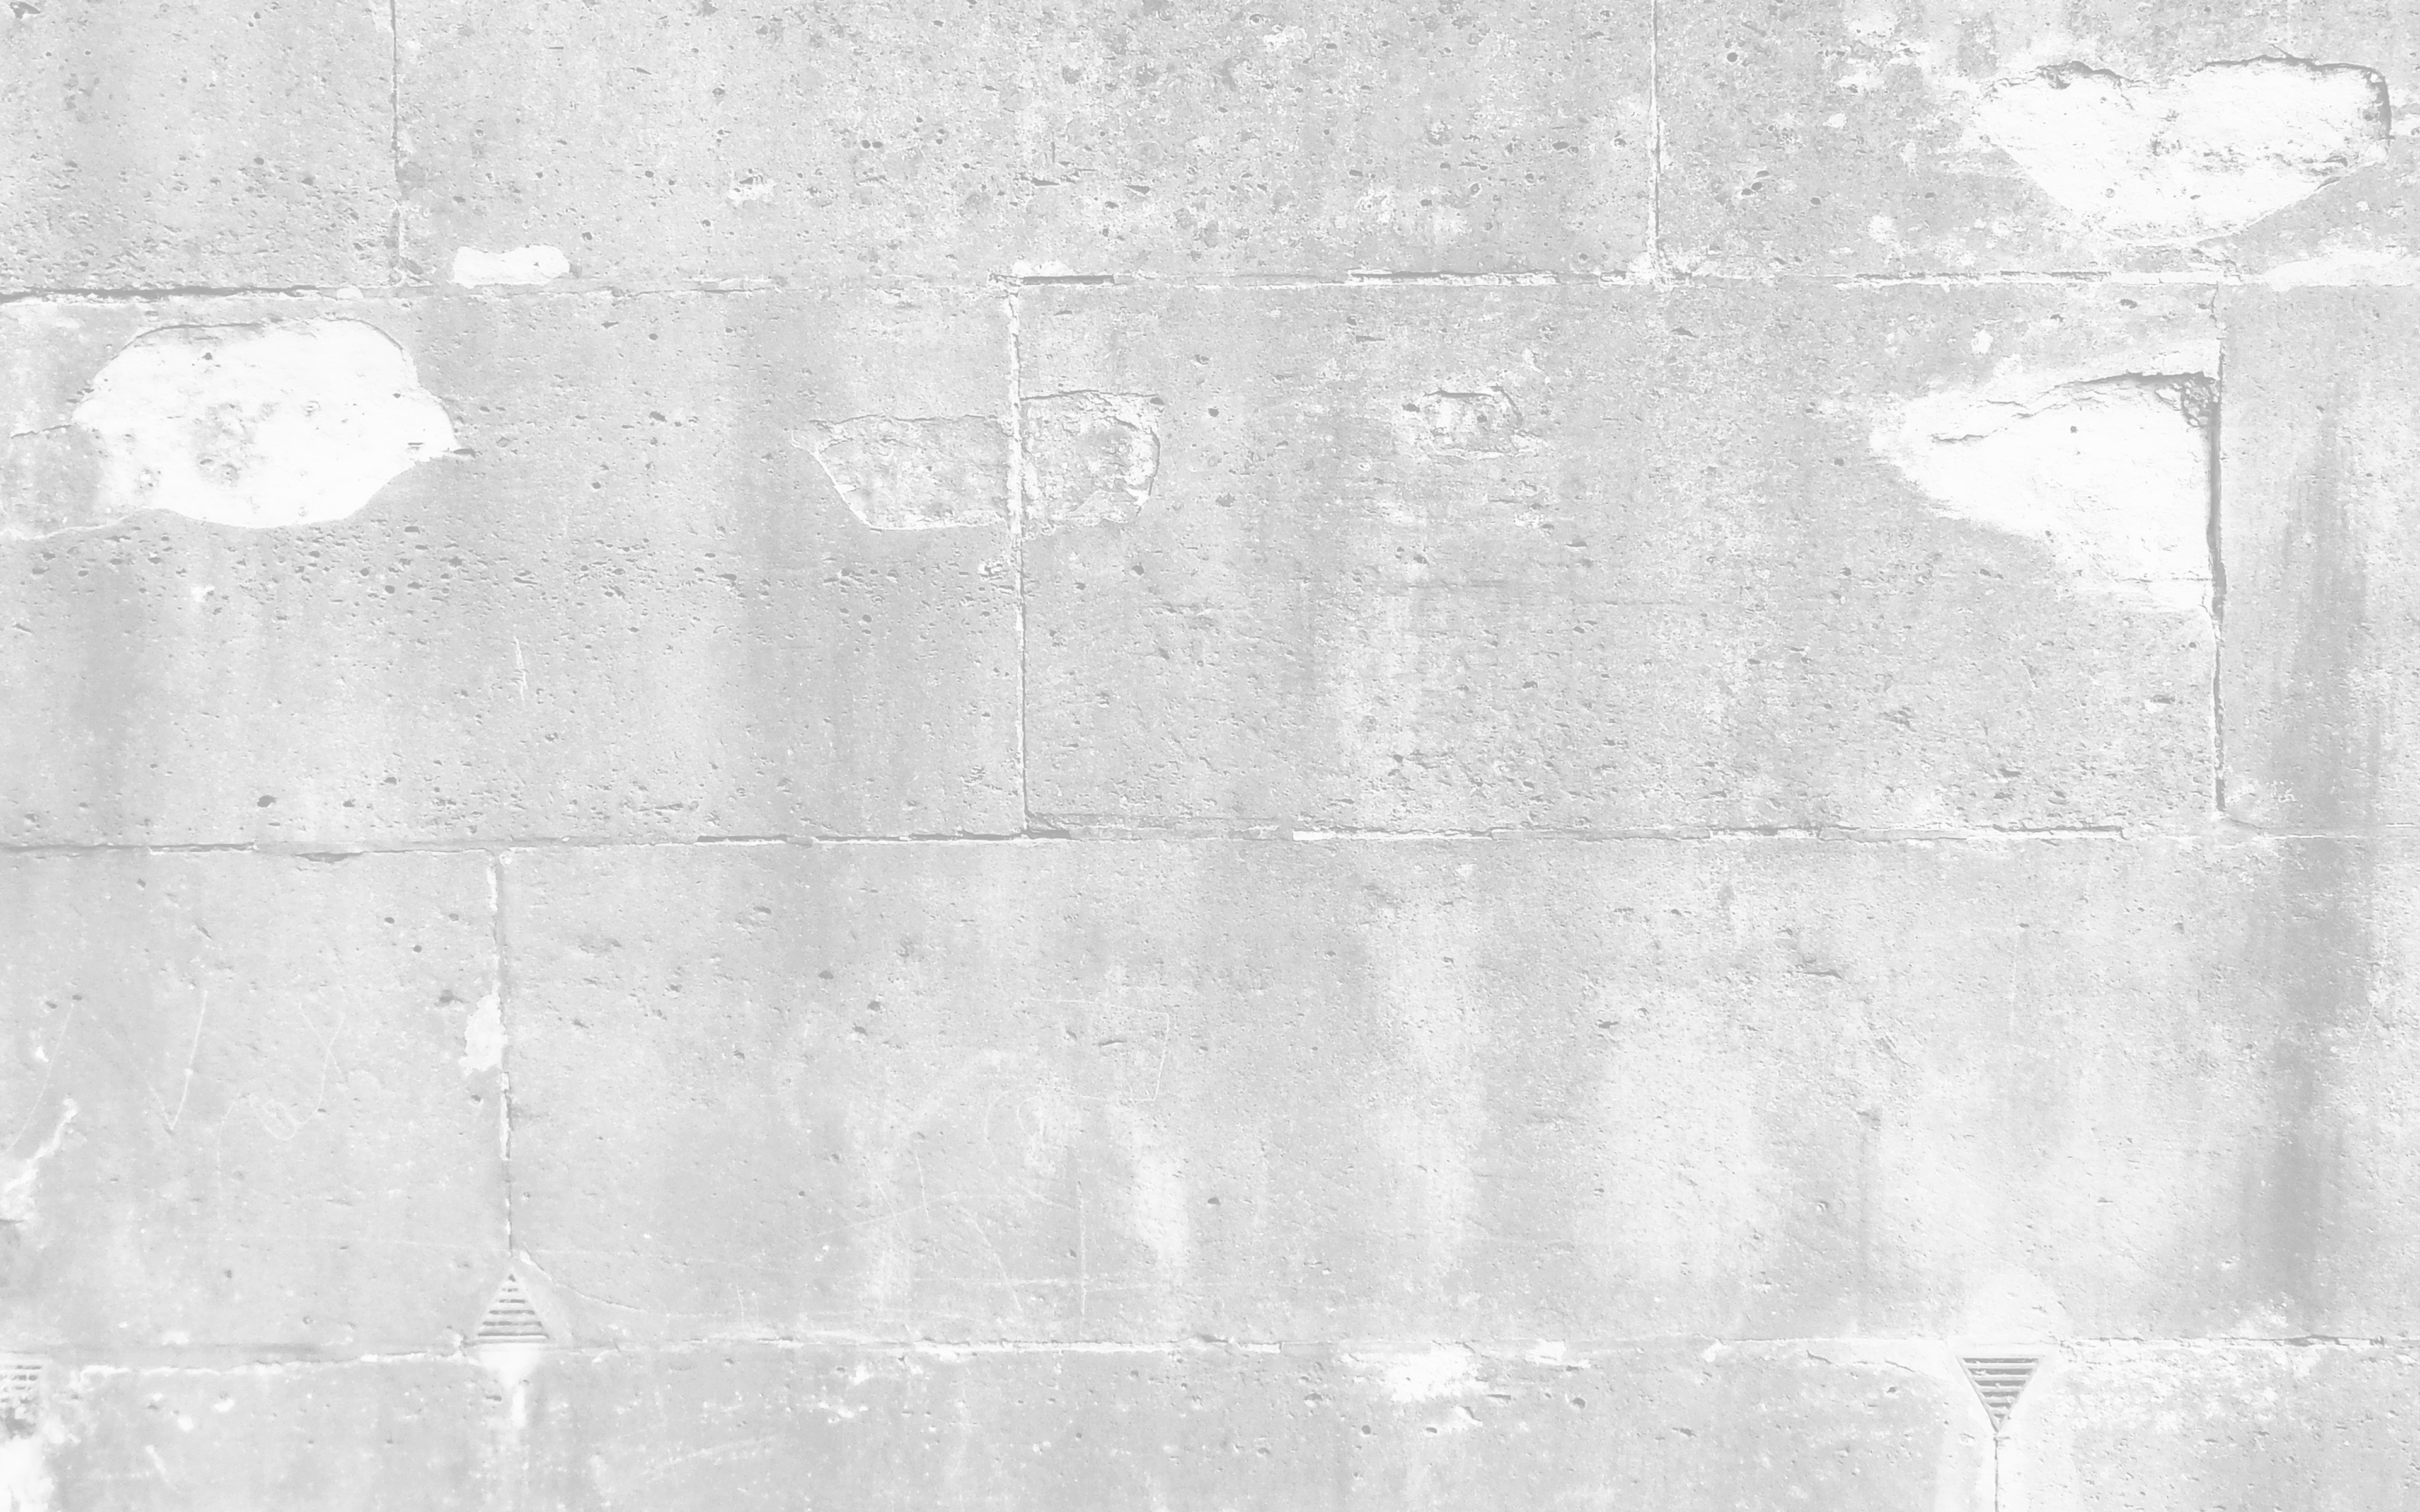 Fall Wallpaper Backgrounds Hd Vj46 Wall Brick Texture Tough White Pattern Bw Papers Co